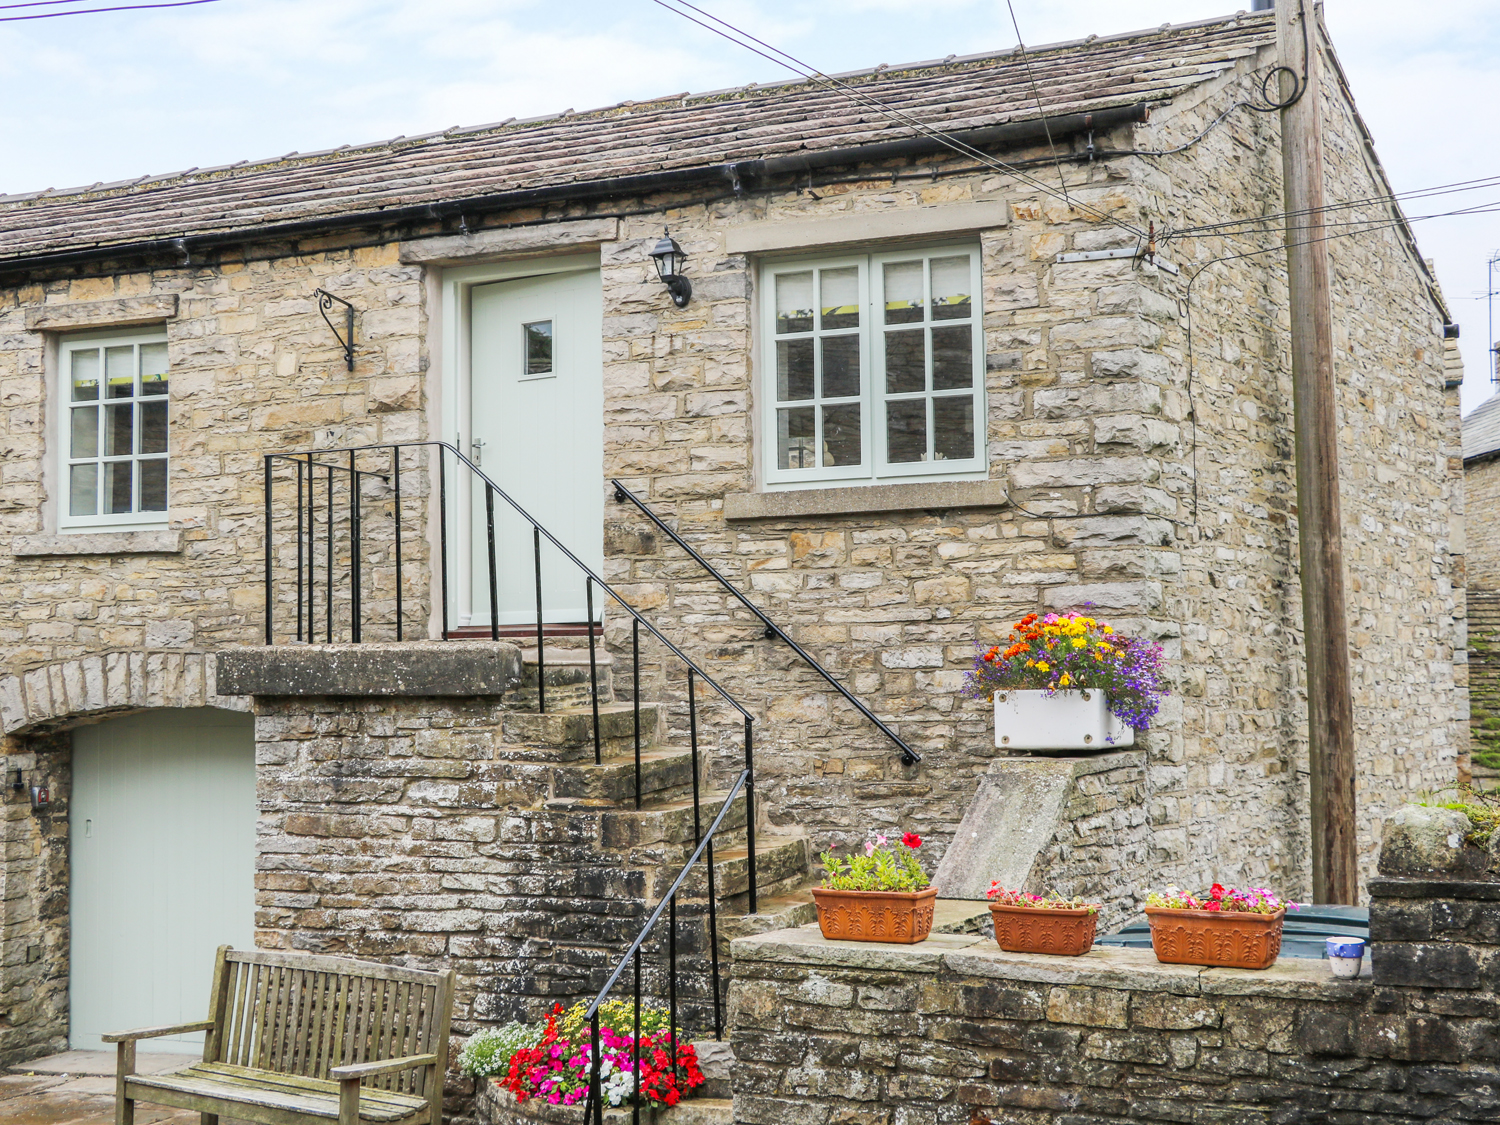 The Hayloft, Yorkshire Dales